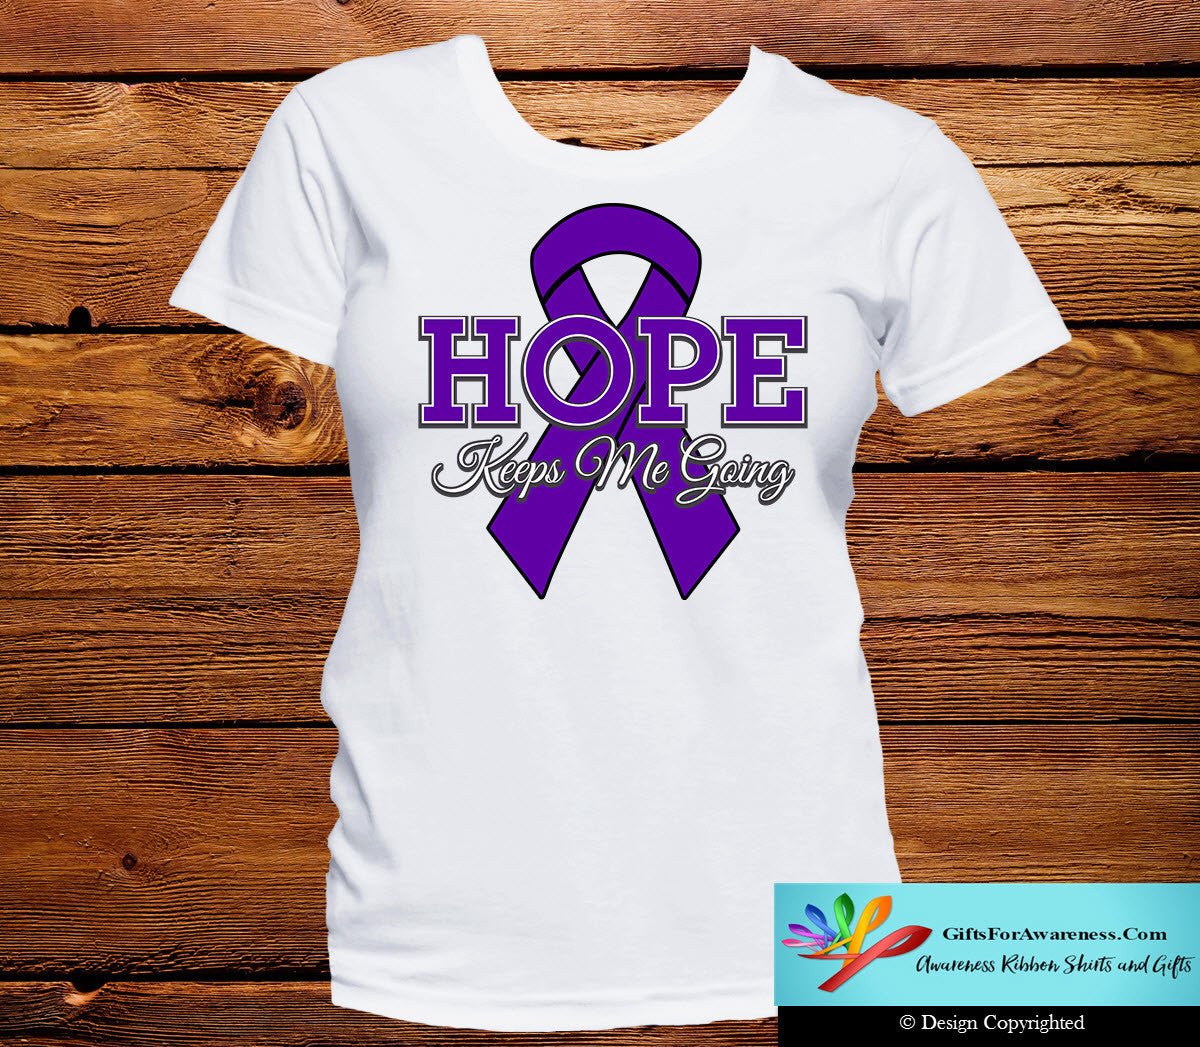 Leiomyosarcoma Hope Keeps Me Going Shirts - GiftsForAwareness